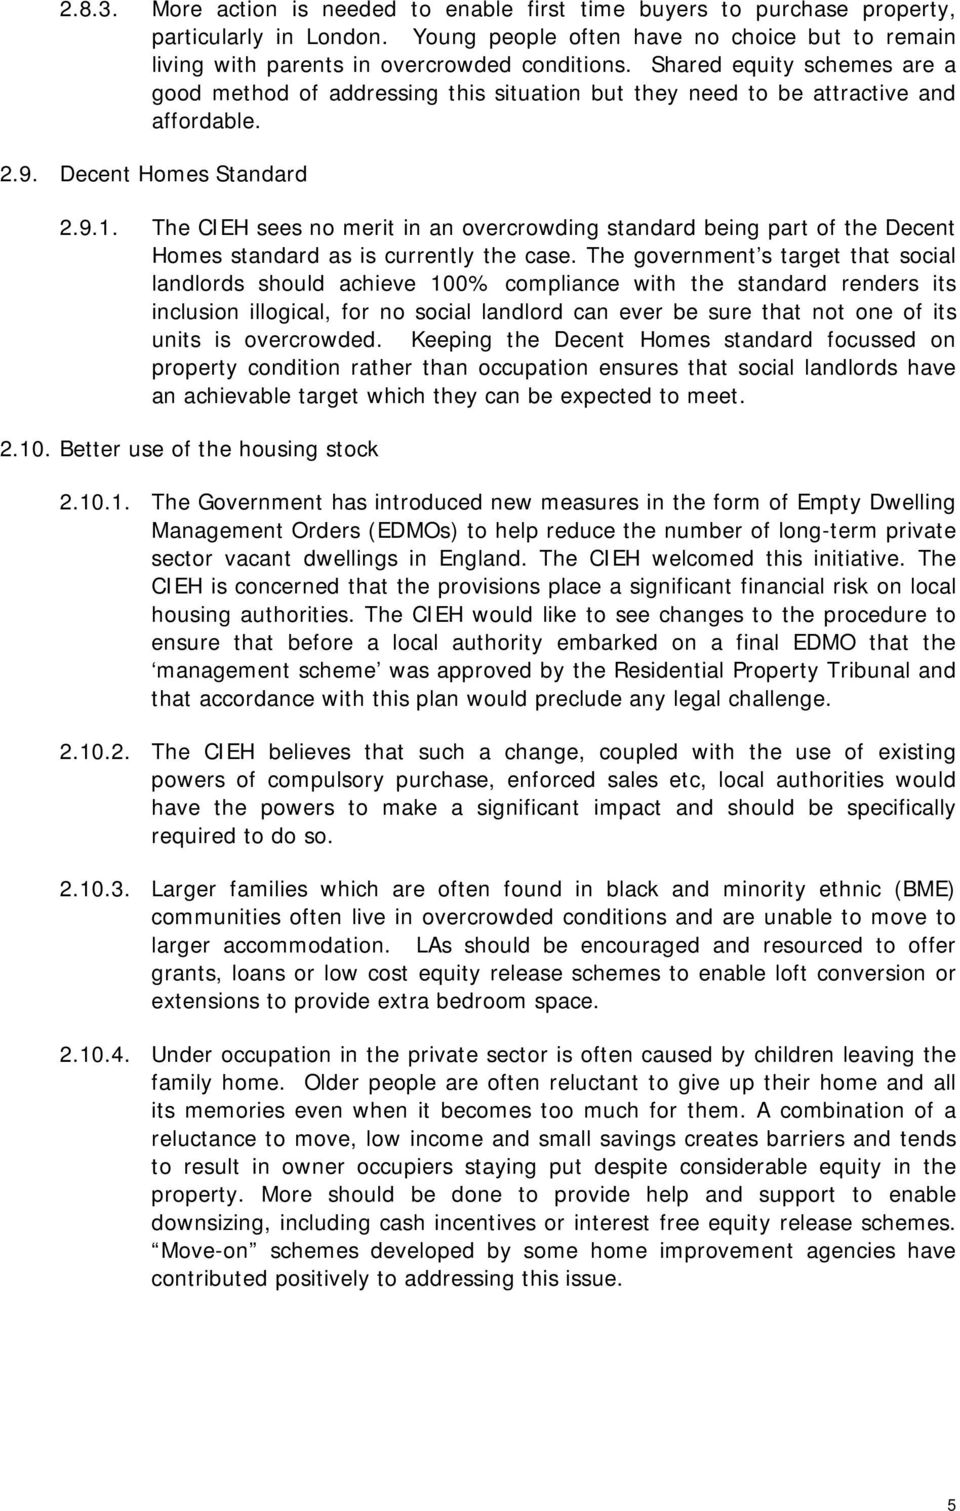 The CIEH sees no merit in an overcrowding standard being part of the Decent Homes standard as is currently the case.